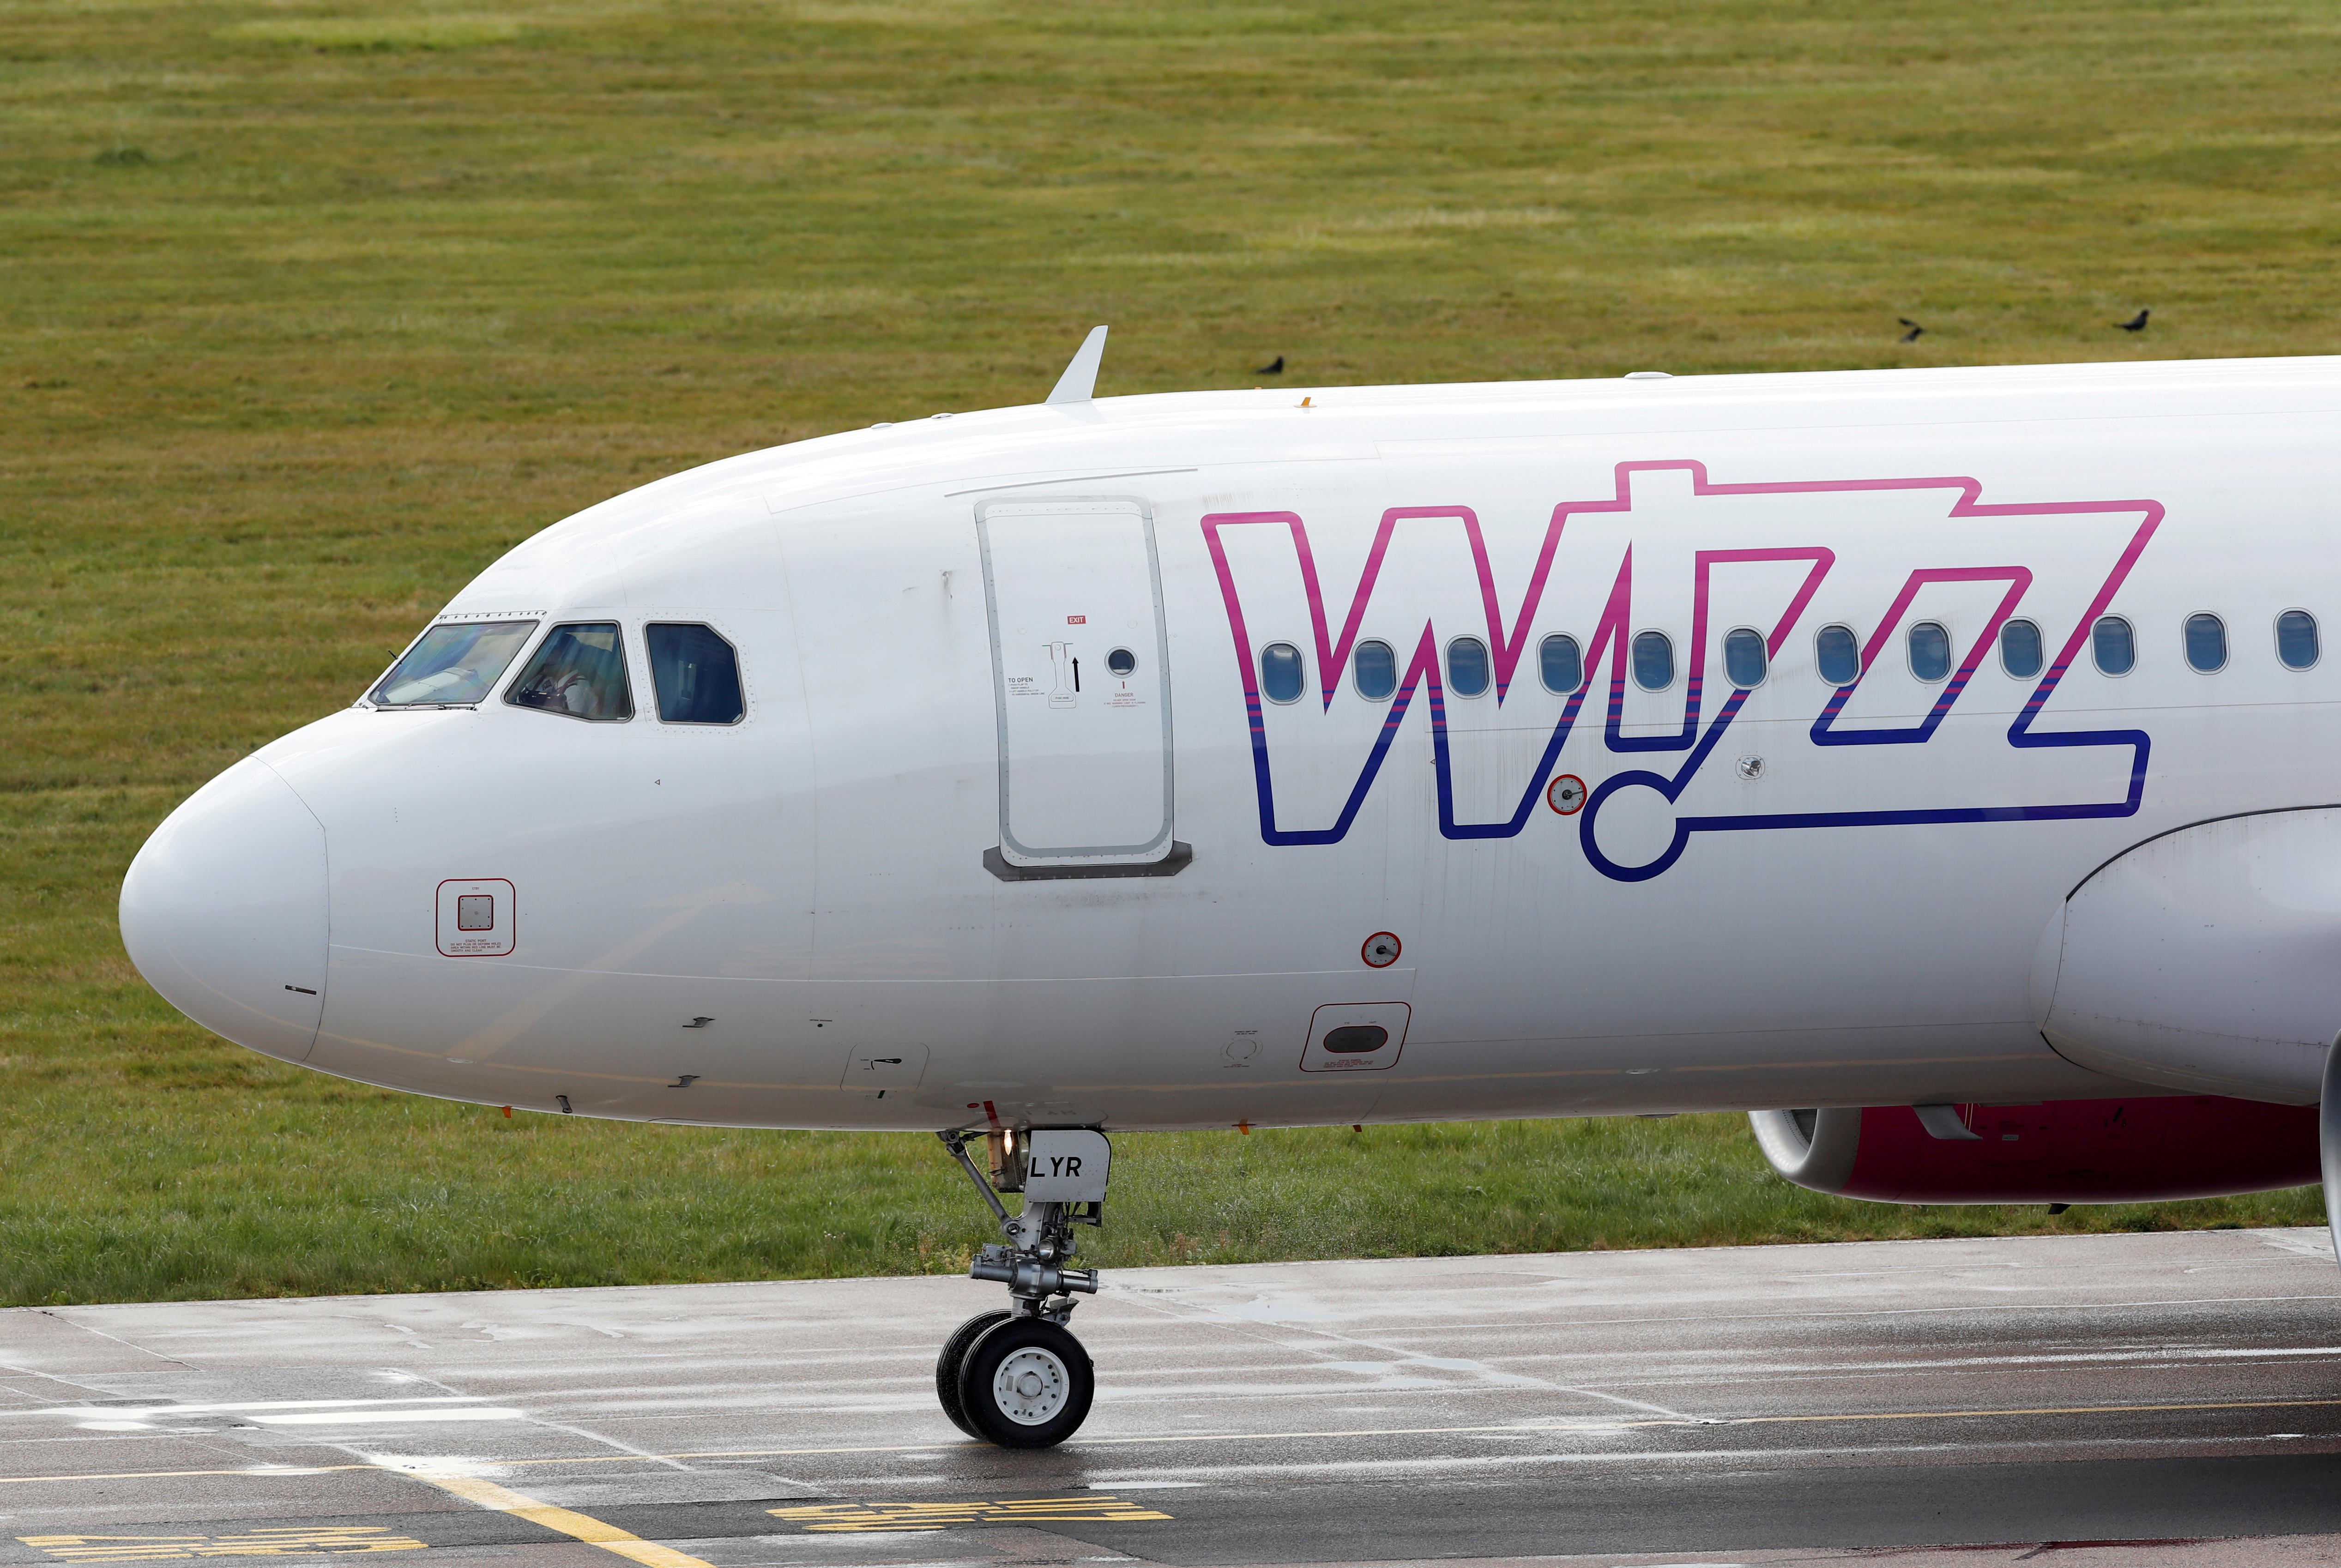 A Wizz Air Airbus A320 at Luton Airport,  Luton, Britain, May 1, 2020. REUTERS/Andrew Boyers/File Photo